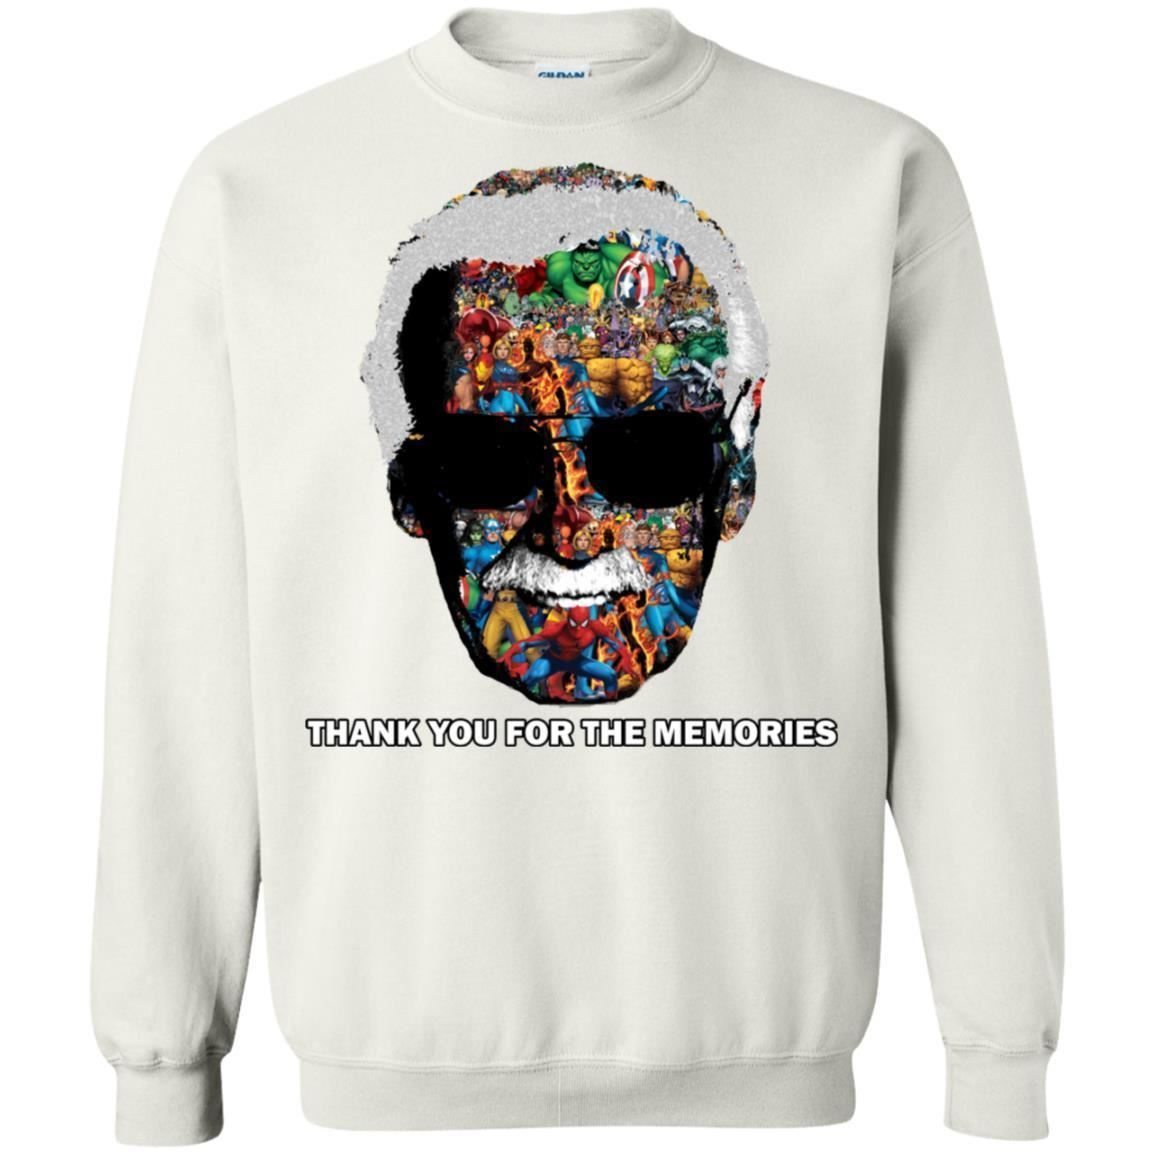 Thank You For The Memories Tee Shirt  - Inspired By Stan Lee Sweatshirt - Super image 7